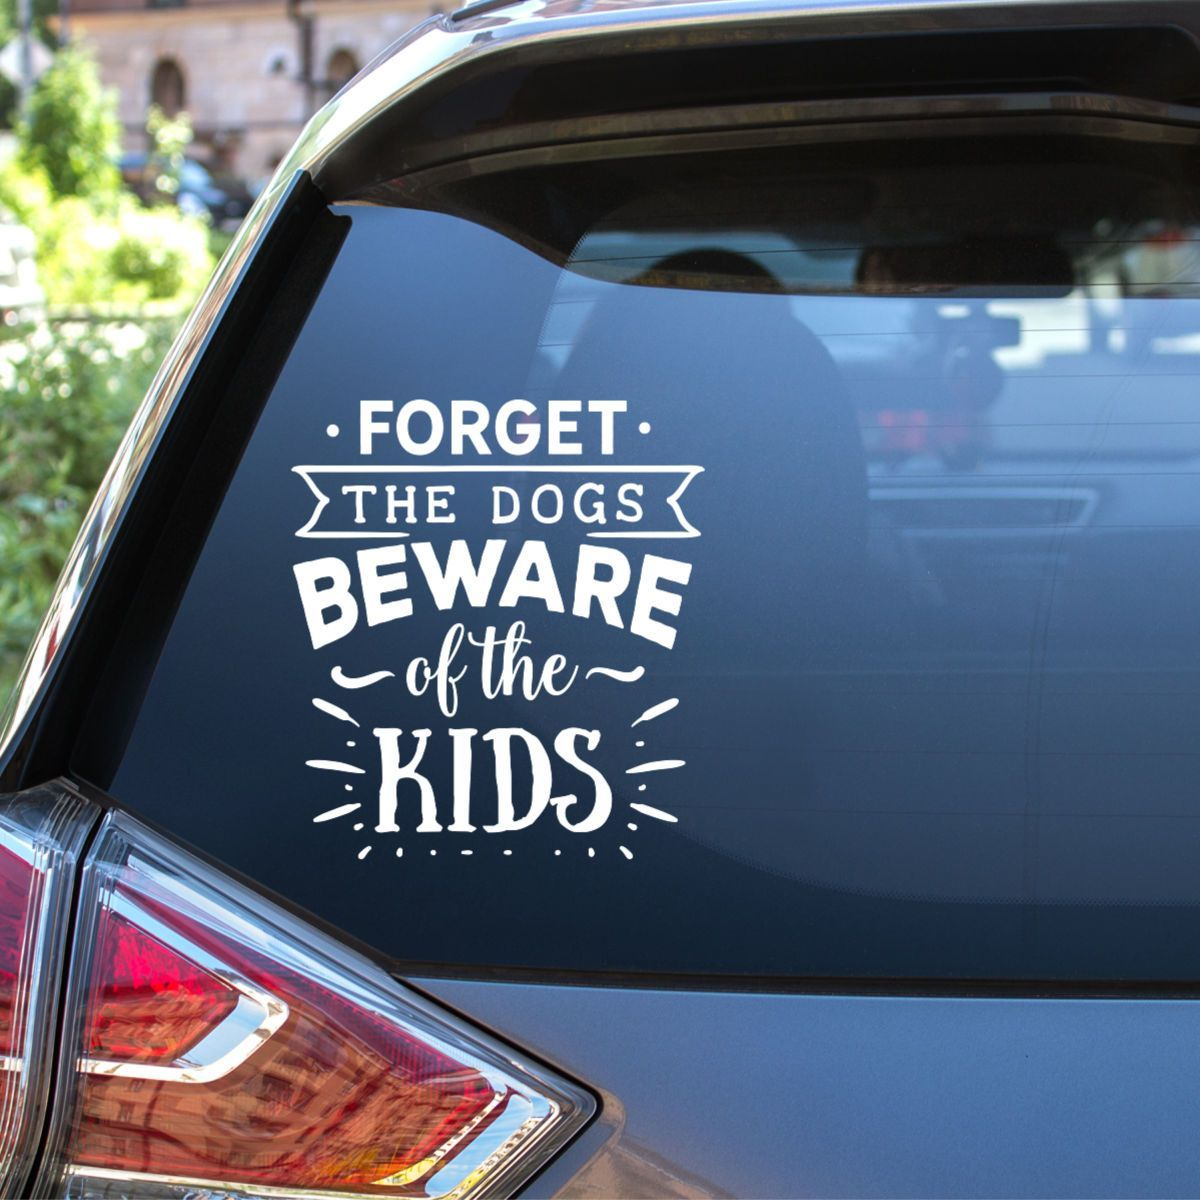 Parents Know That Their Kids Are Crazier Than The Dogs Embrace The Madness With This Funny Vinyl Decal Th Kids Vinyl Decals Car Decals Vinyl Window Decals Diy [ 1200 x 1200 Pixel ]